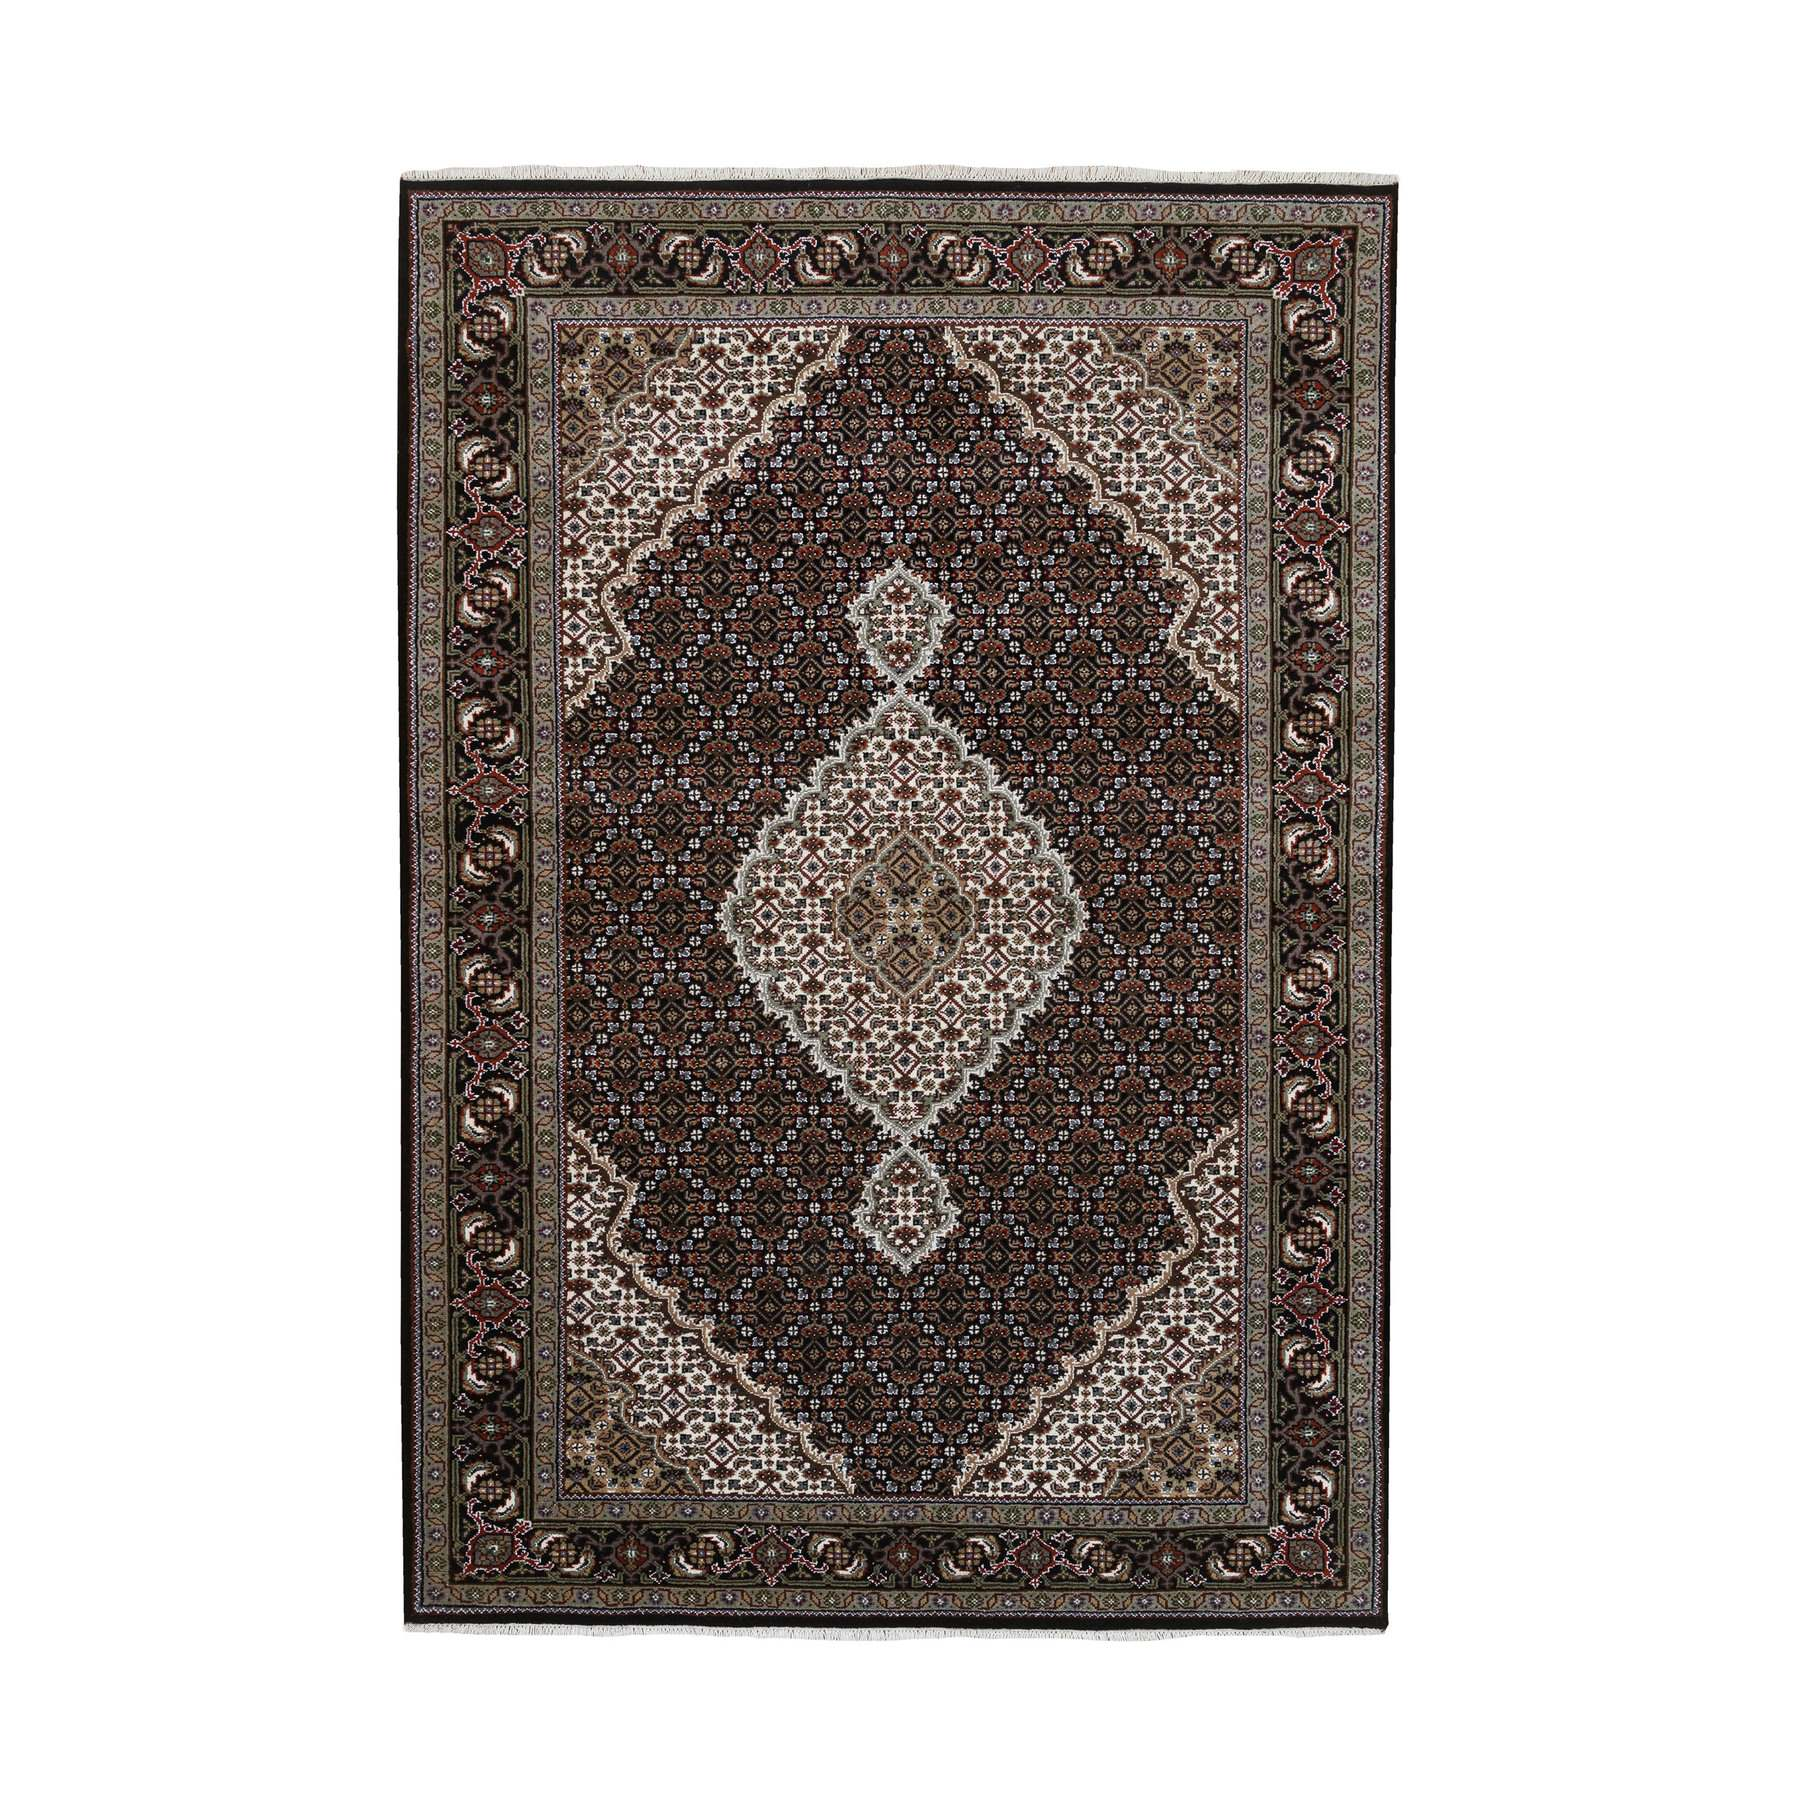 Pirniakan Collection Hand Knotted Black Rug No: 1127072